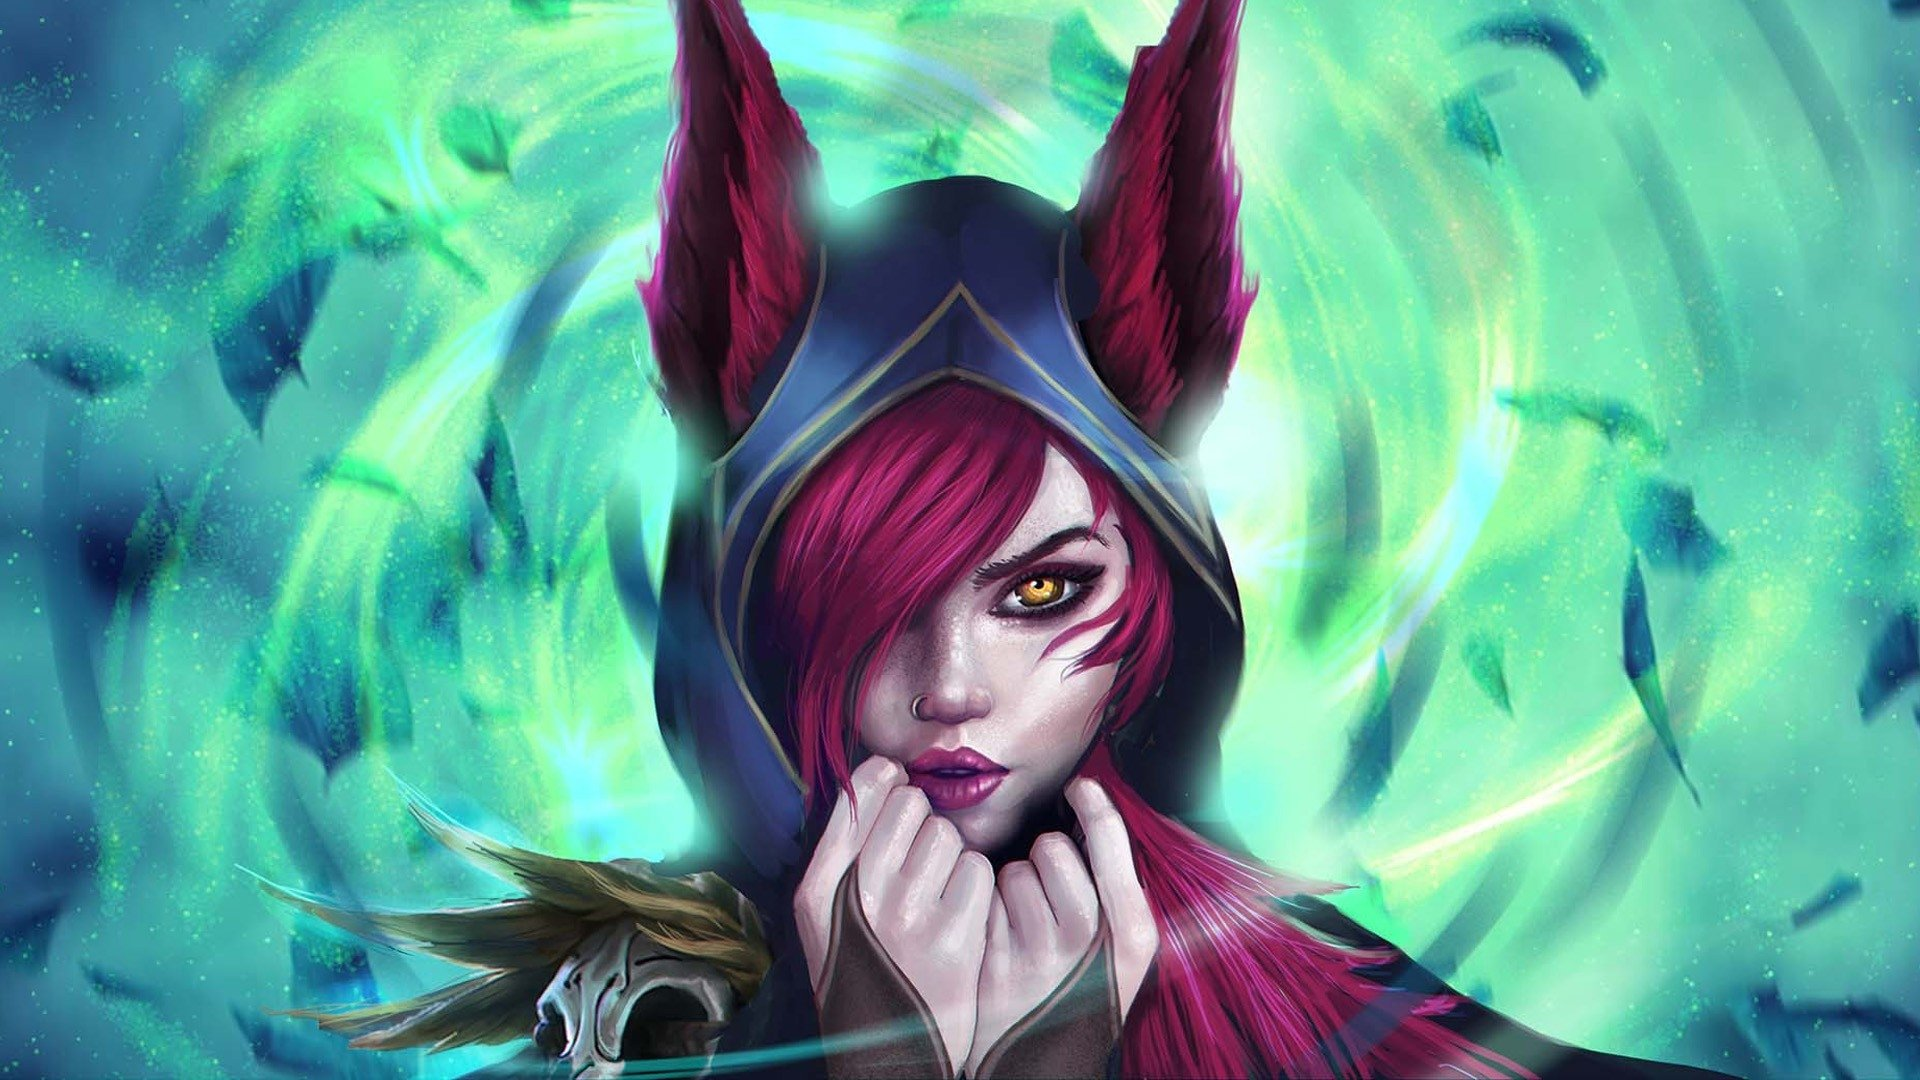 19 Xayah League Of Legends Hd Wallpapers Background Images